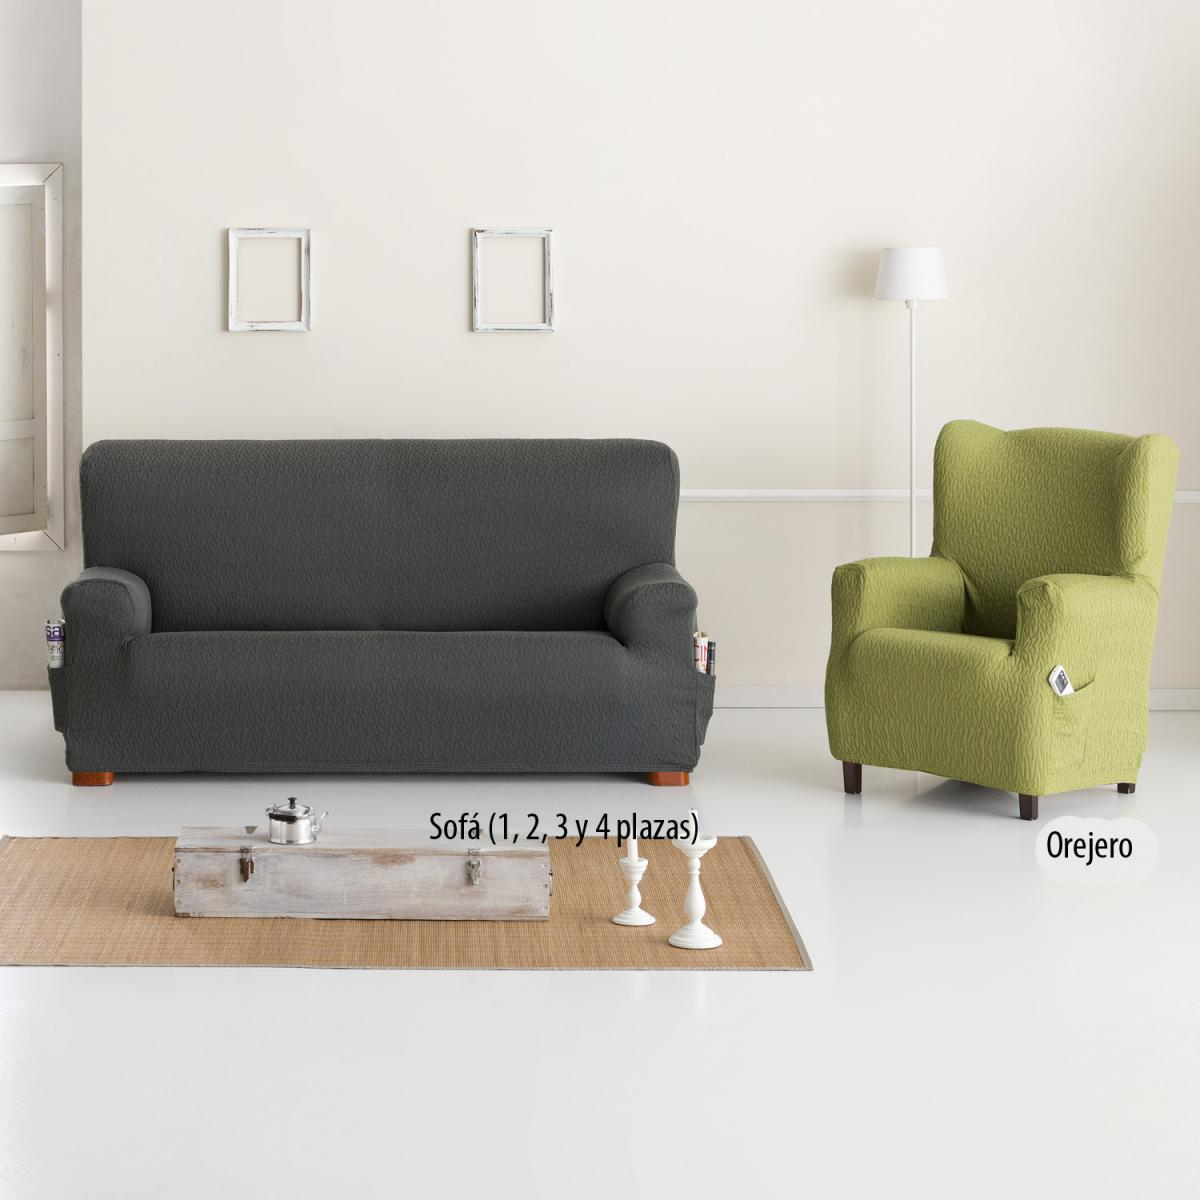 Funda sof tendre eysa funda sof - Fundas sofa madrid ...